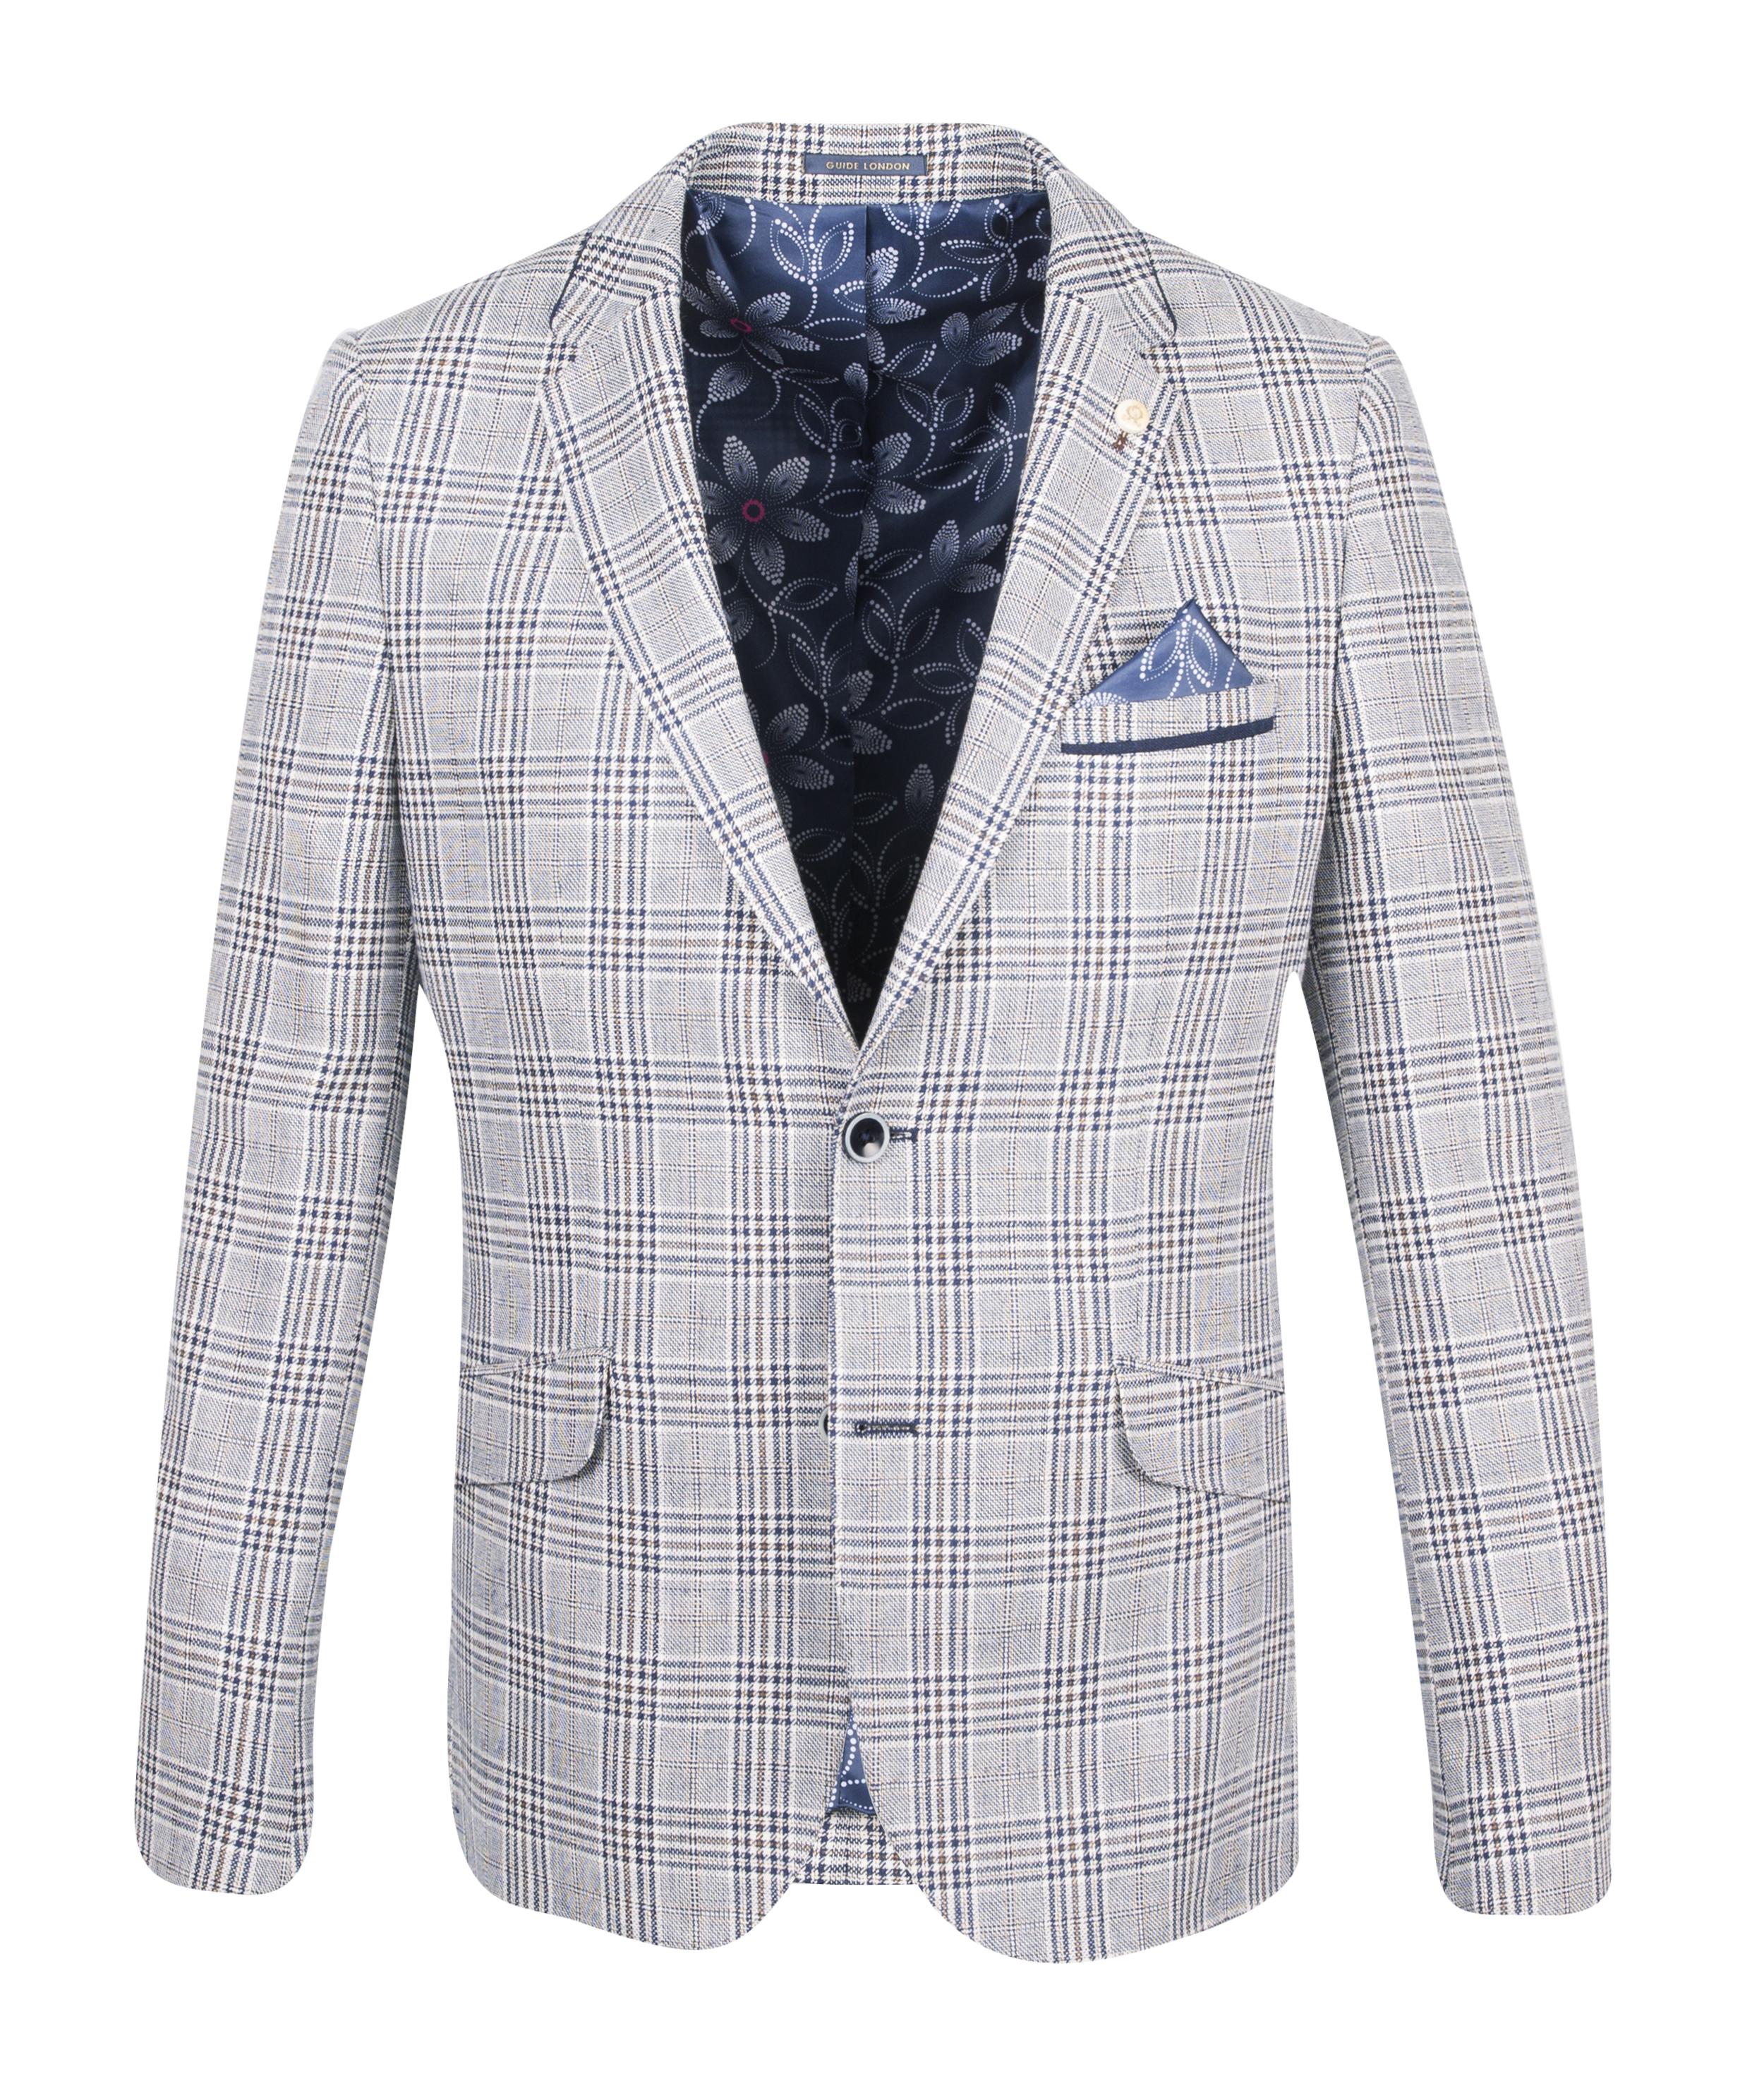 smart blazers for men at Baccus, Essex